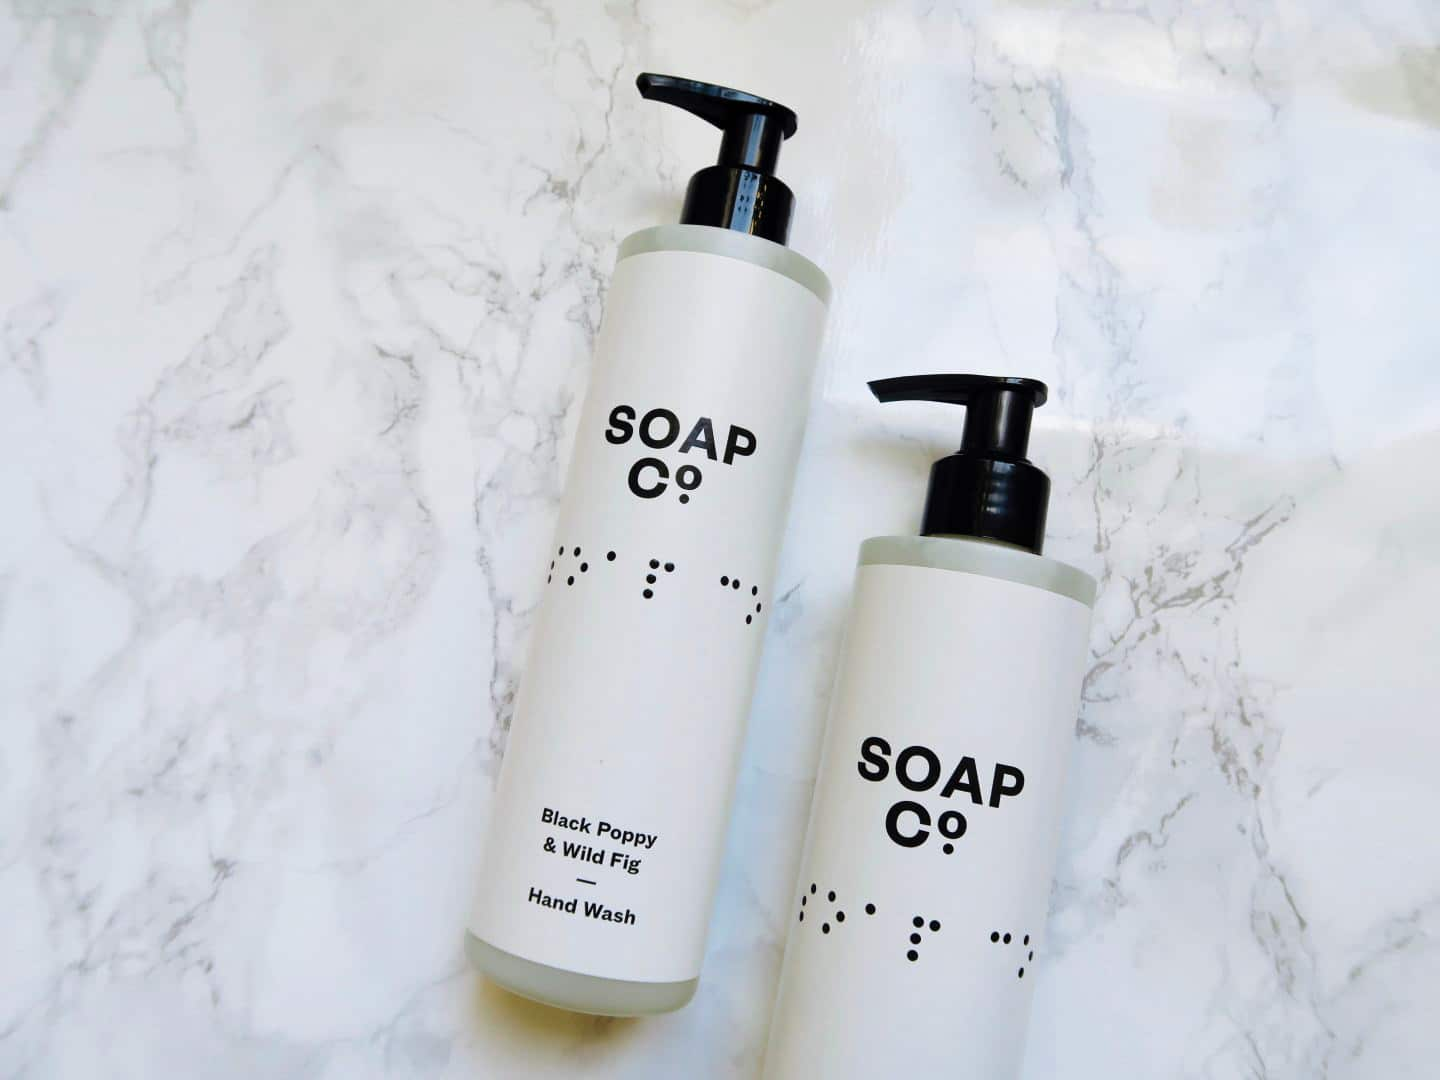 The Soap Co Refillable Hand Wash